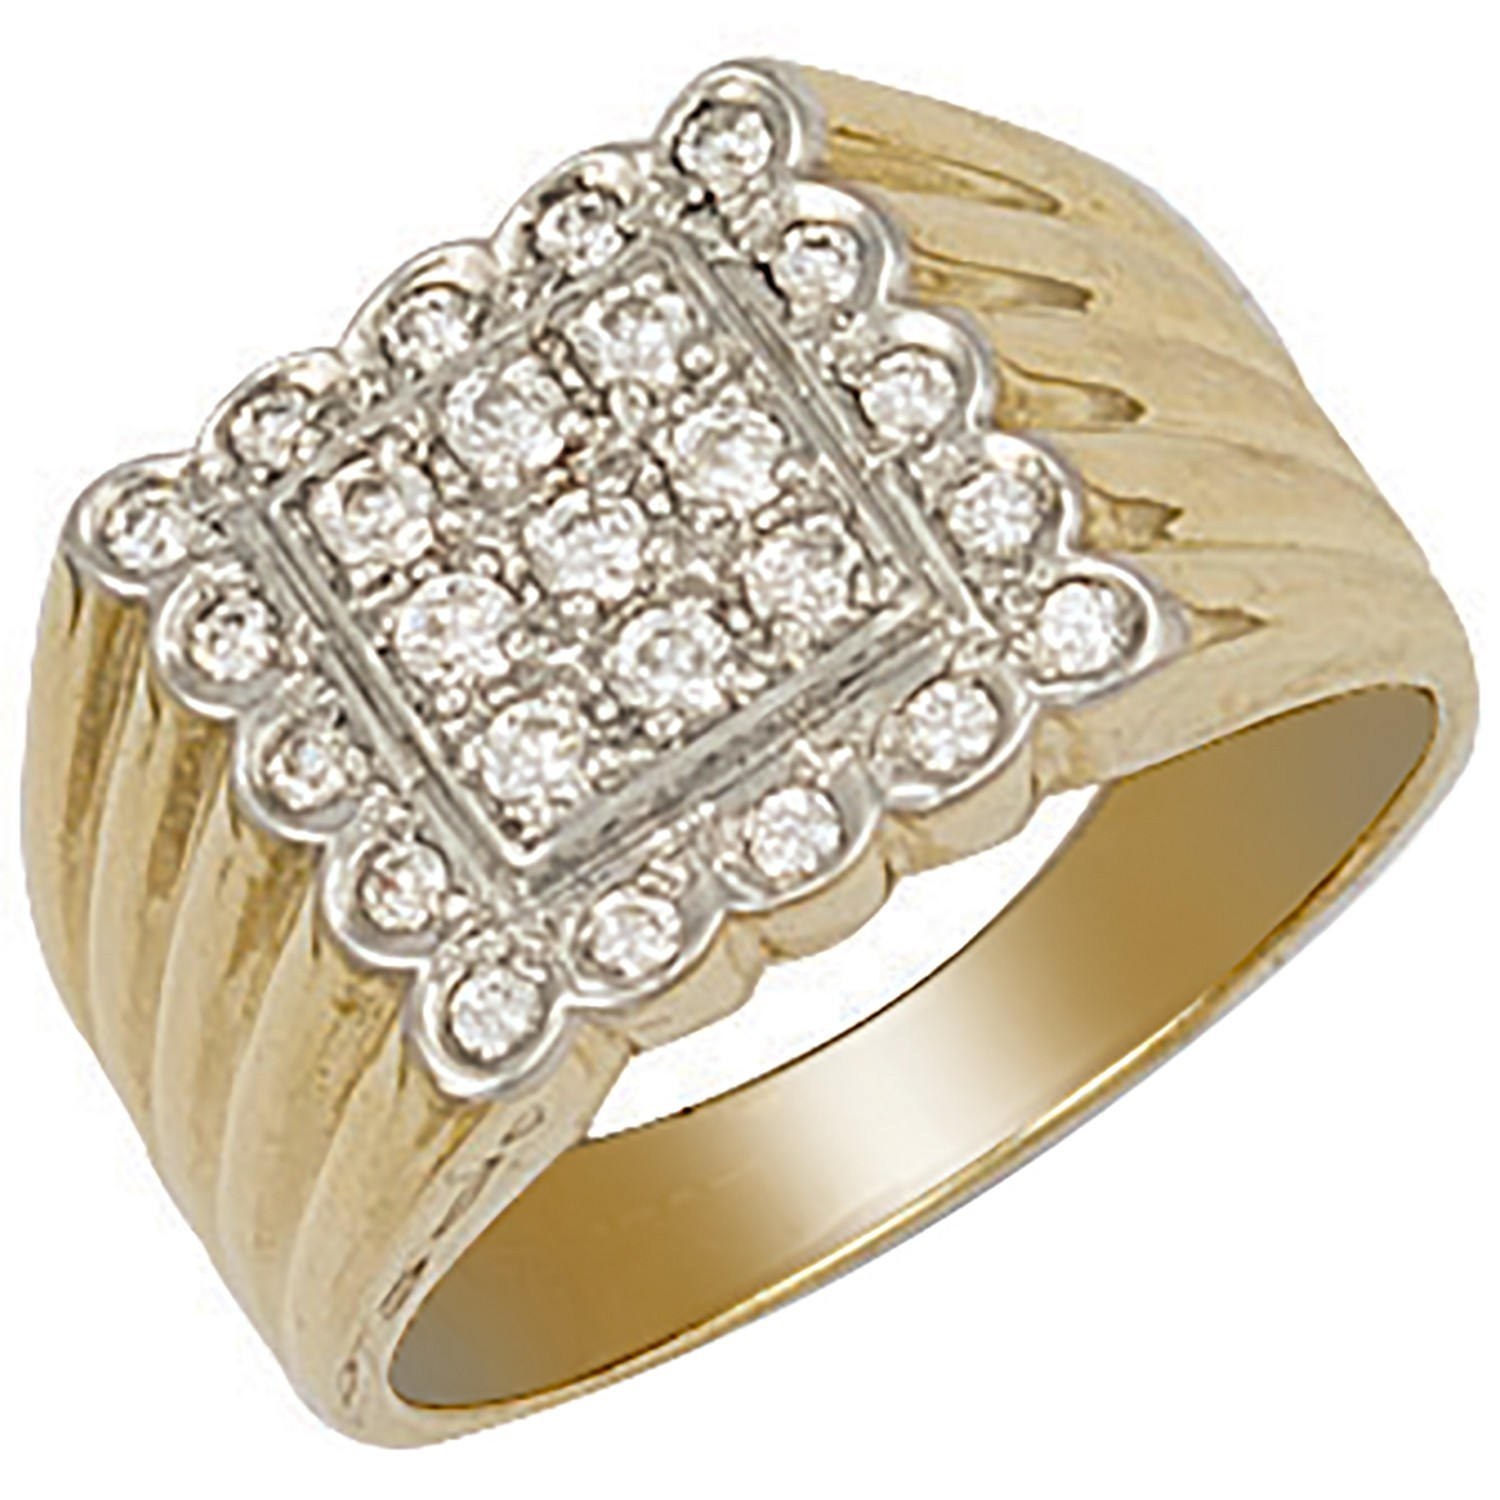 Y/G Square Top Gents Cz Ring